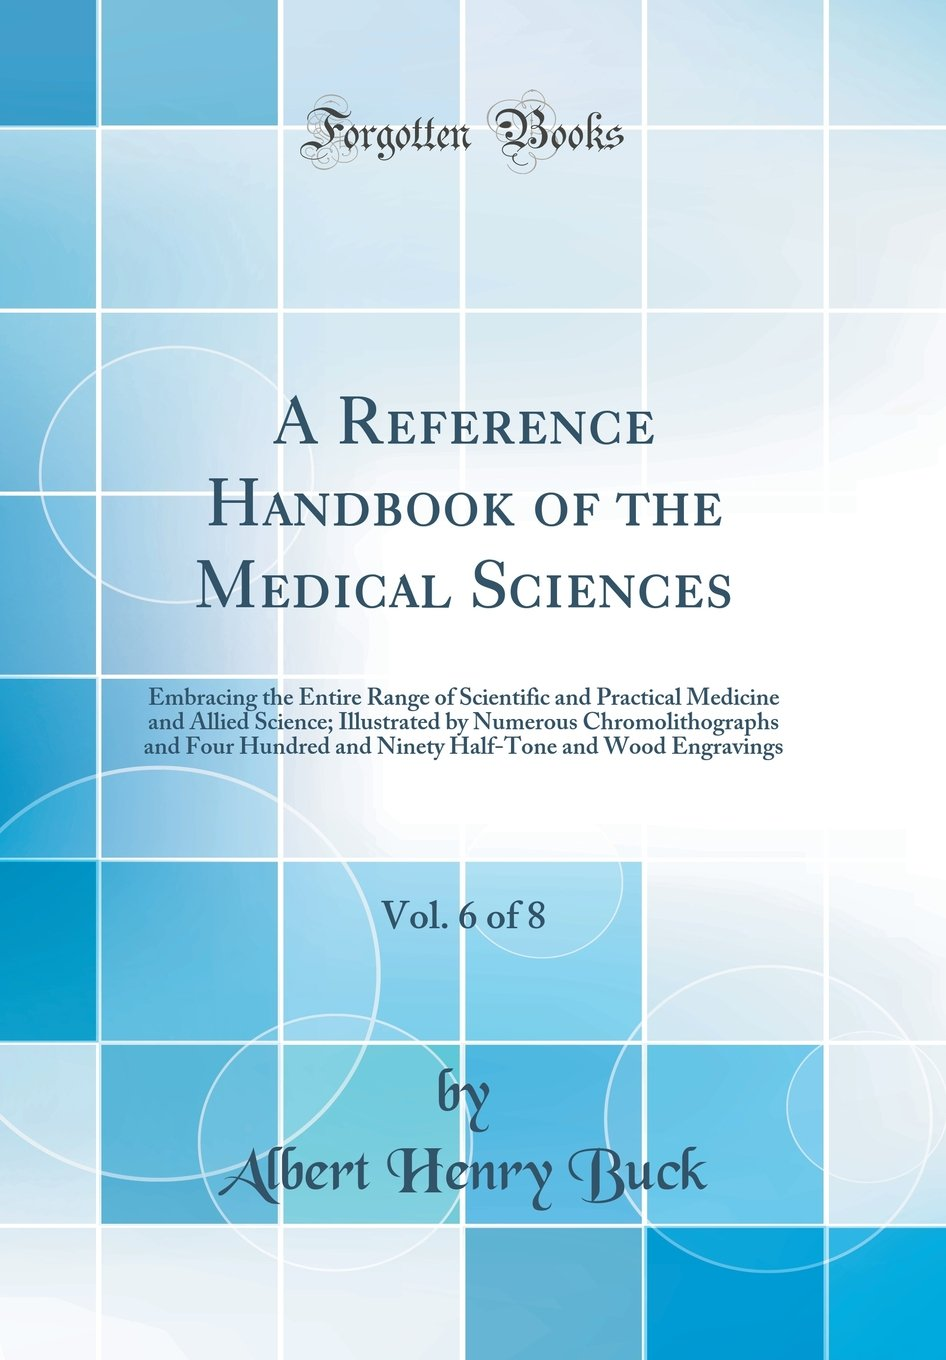 A Reference Handbook of the Medical Sciences, Vol. 6 of 8: Embracing the Entire Range of Scientific and Practical Medicine and Allied Science; ... and Ninety Half-Tone and Wood Engravings PDF